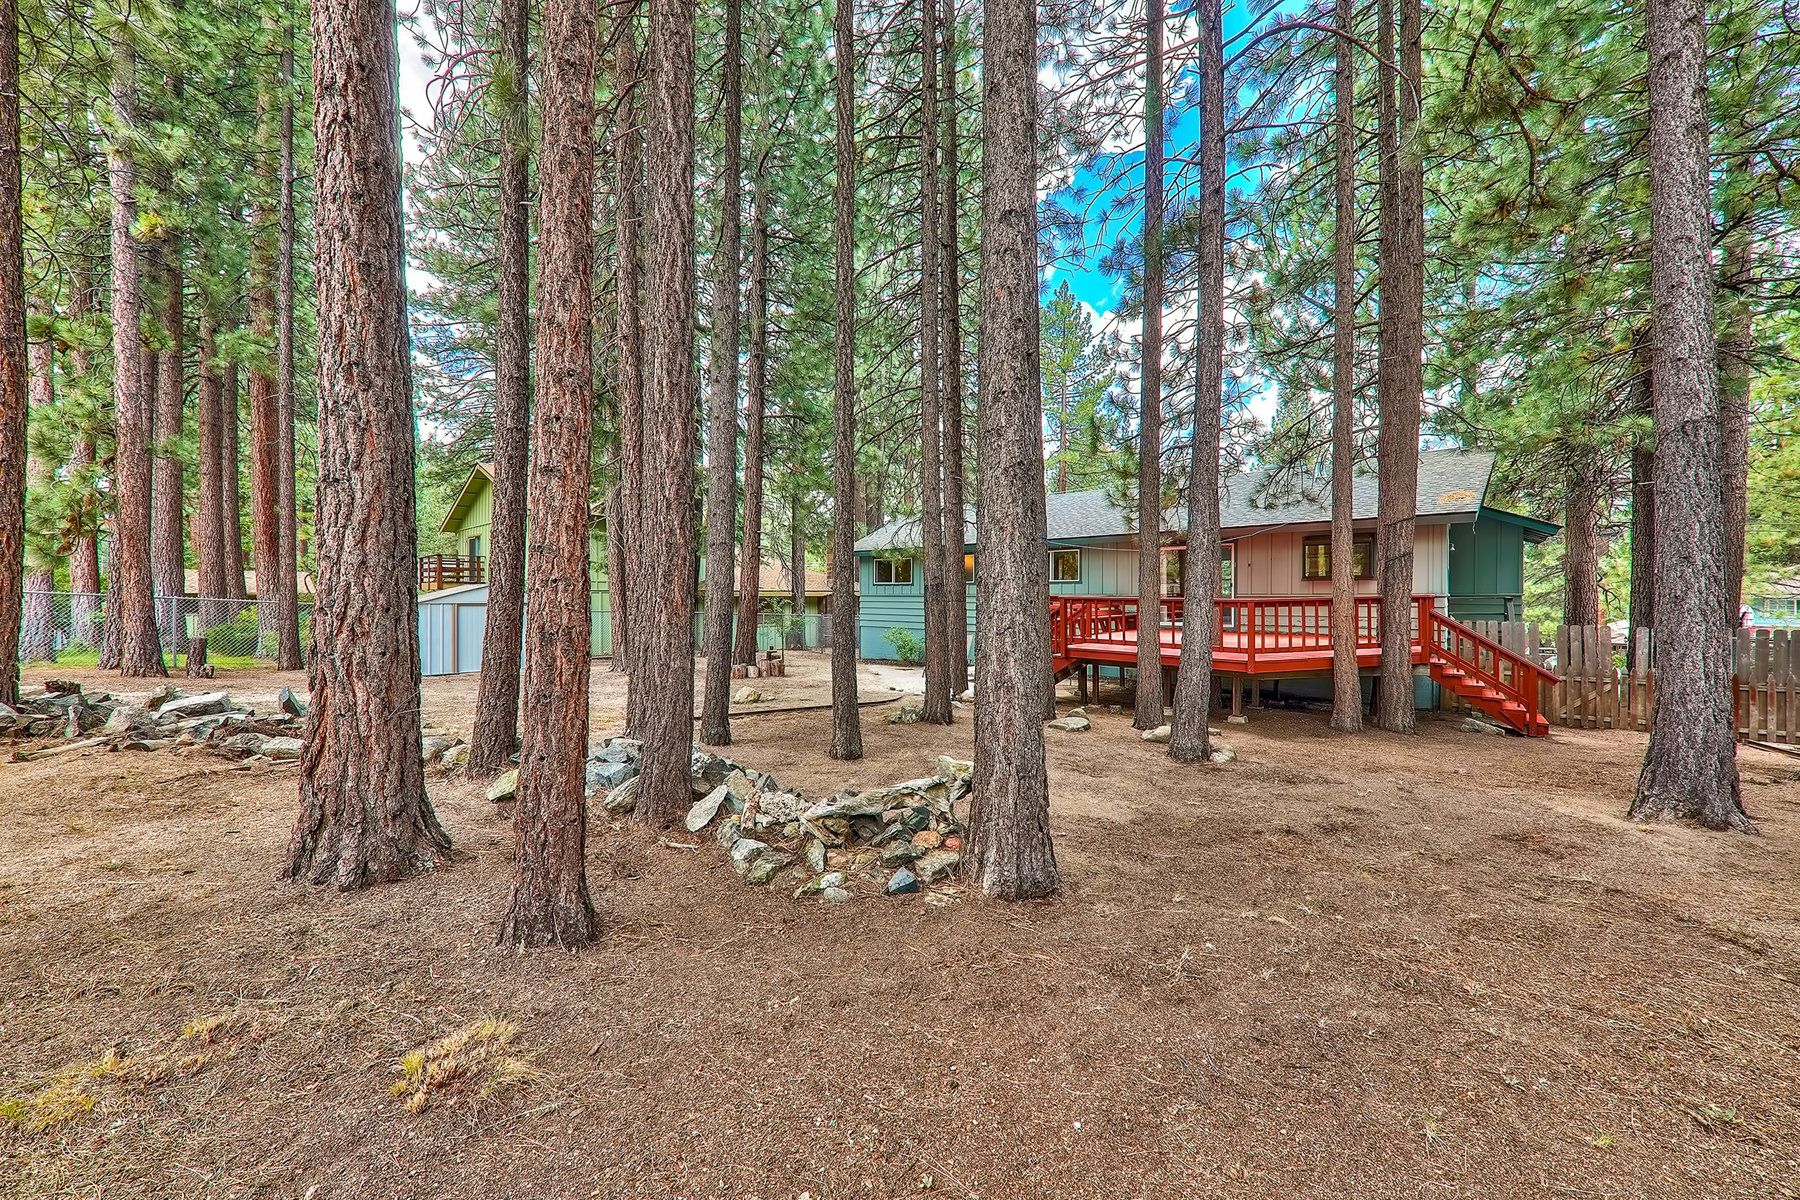 Additional photo for property listing at 3517 Bode Dr., South Lake Tahoe, CA 3517 Bode Dr. South Lake Tahoe, California 96150 United States